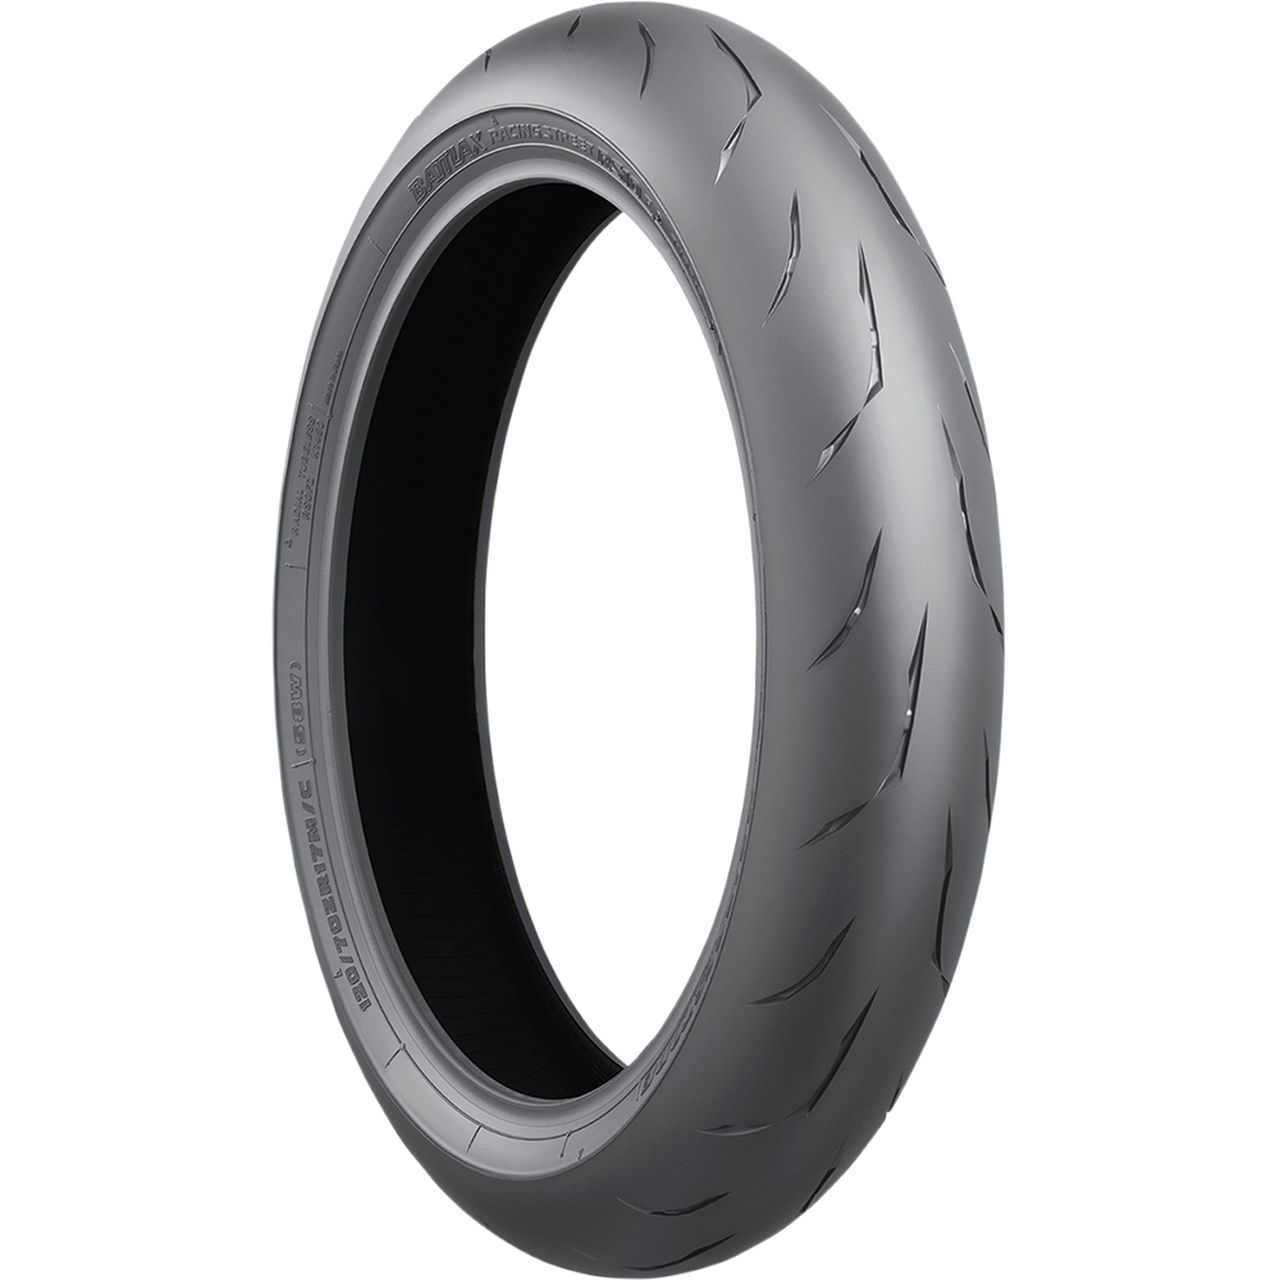 Pneu Bridgestone Battlax Rs10 120/70 R17 58W